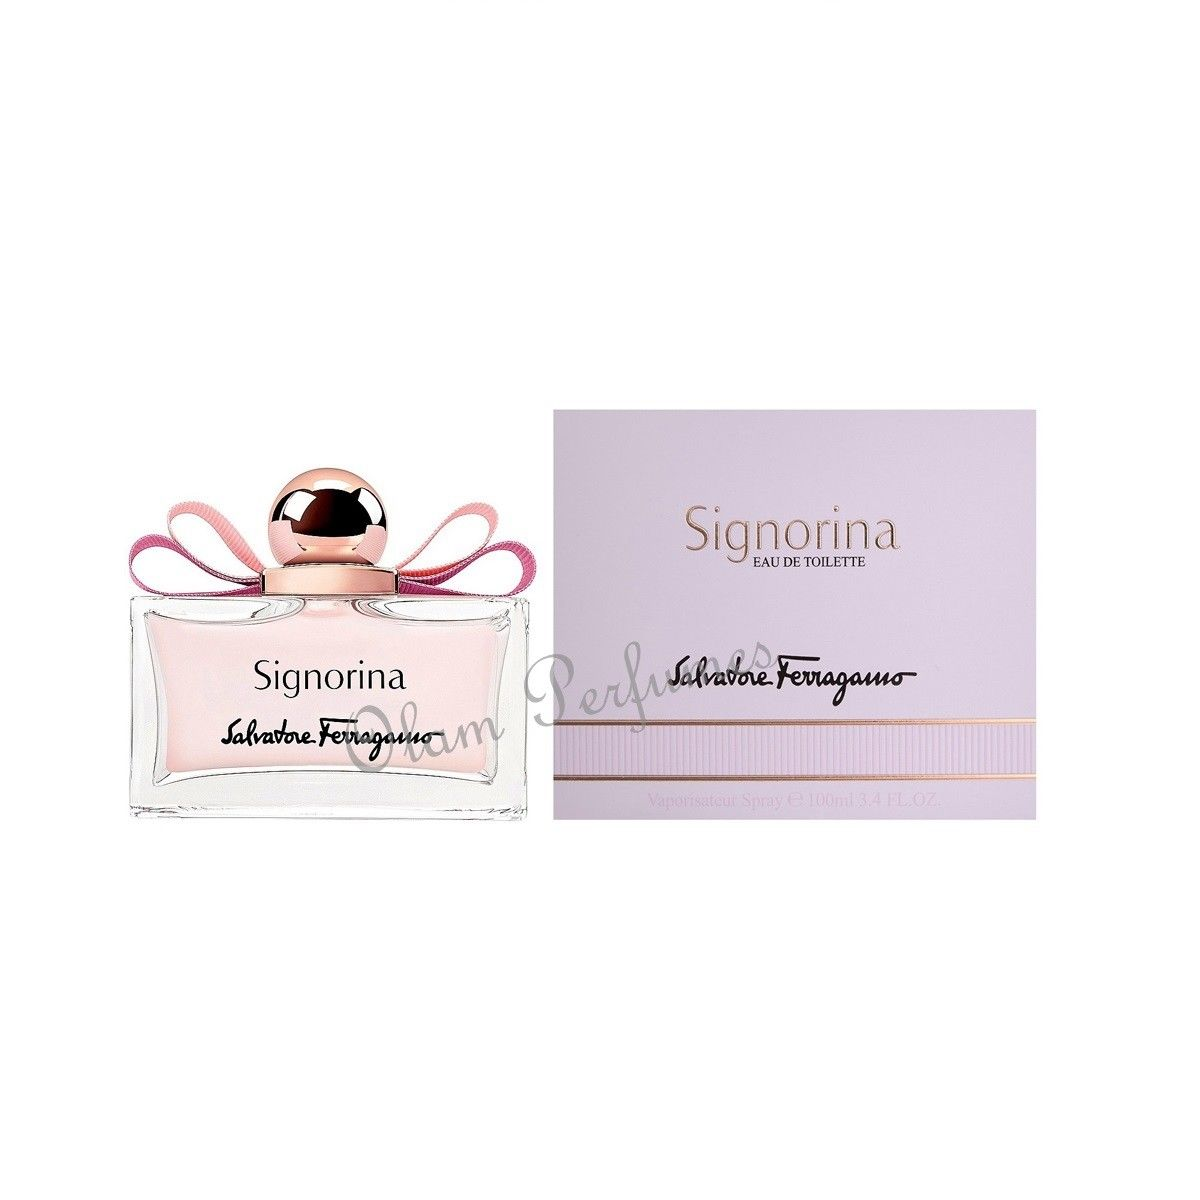 Ferragamo Signorina Eau de Toilette Spray 3.4oz 100ml